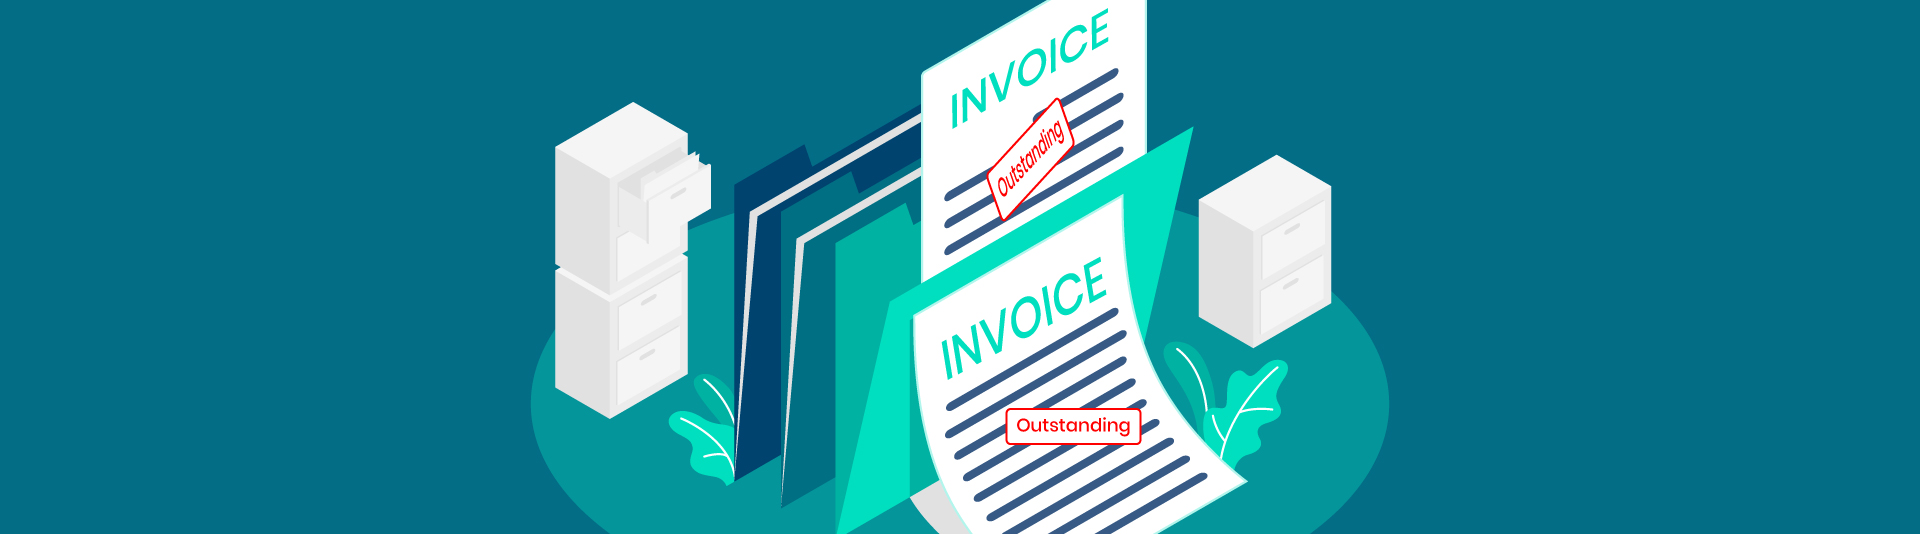 Guide On Outstanding Invoice